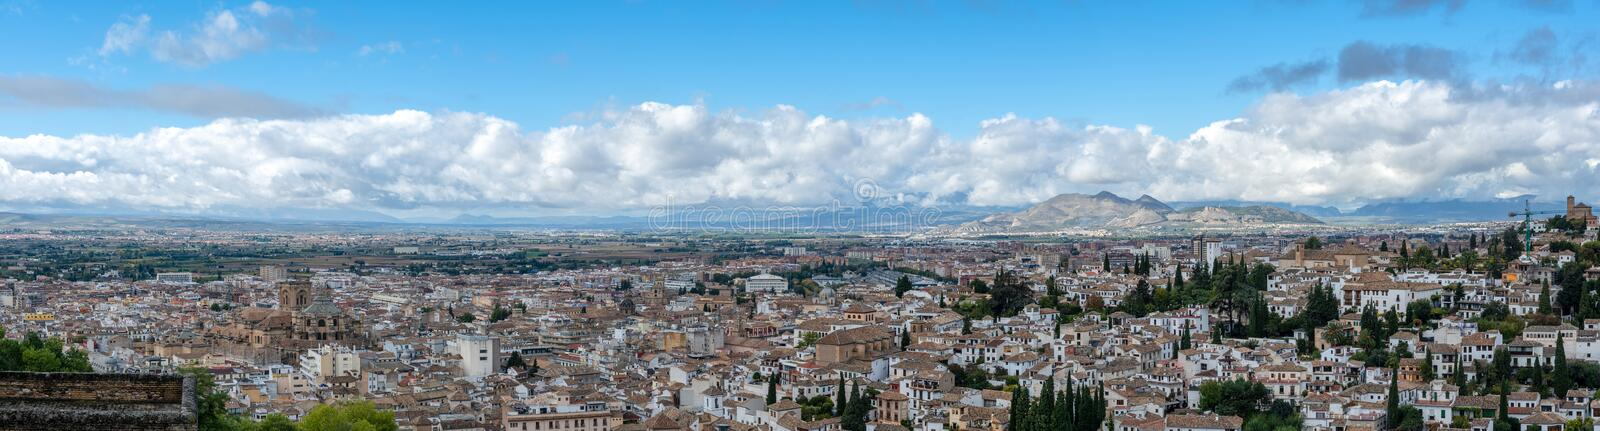 Panorama of the city of Granada in Andalusia in Spain stock photos